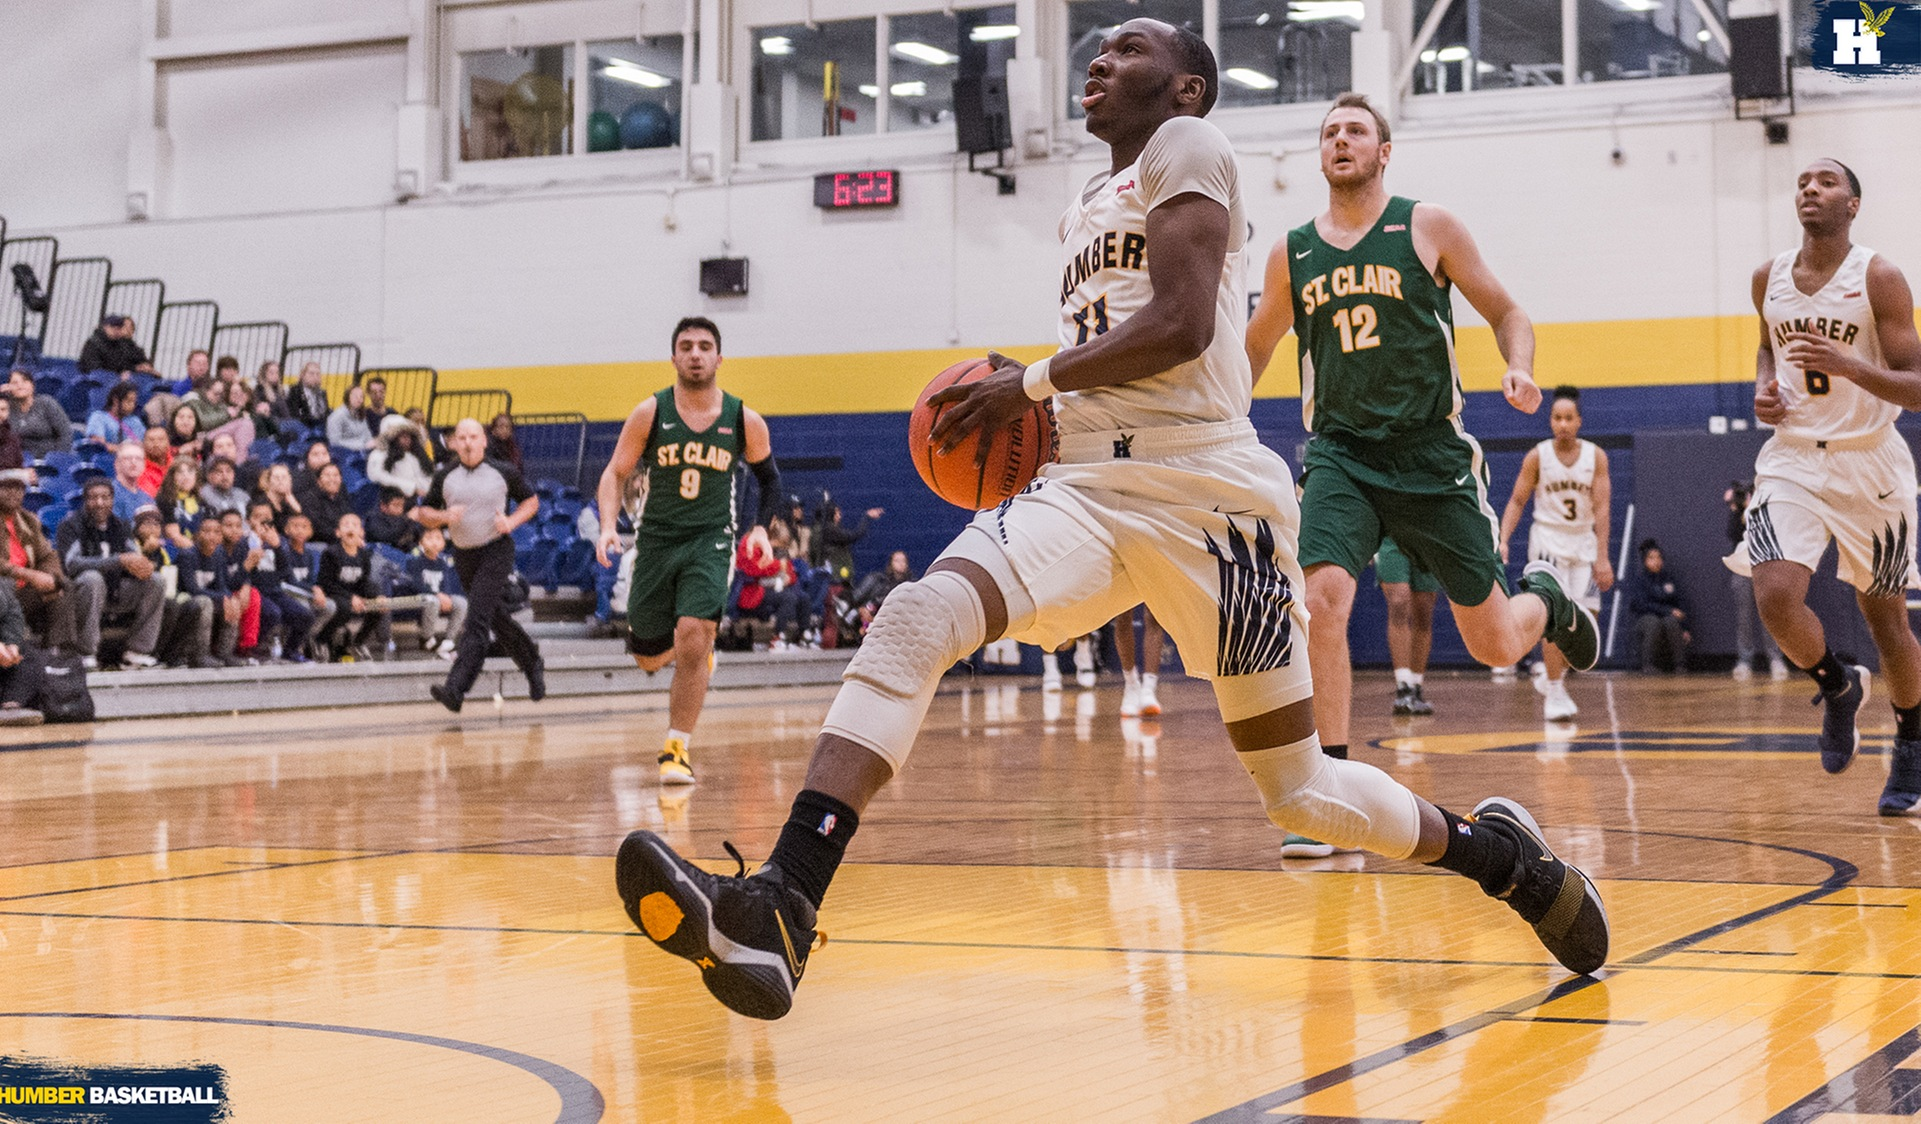 SECOND HALF BEGINS FOR No. 3 MEN'S BASKETBALL AT ST. CLAIR, LAMBTON